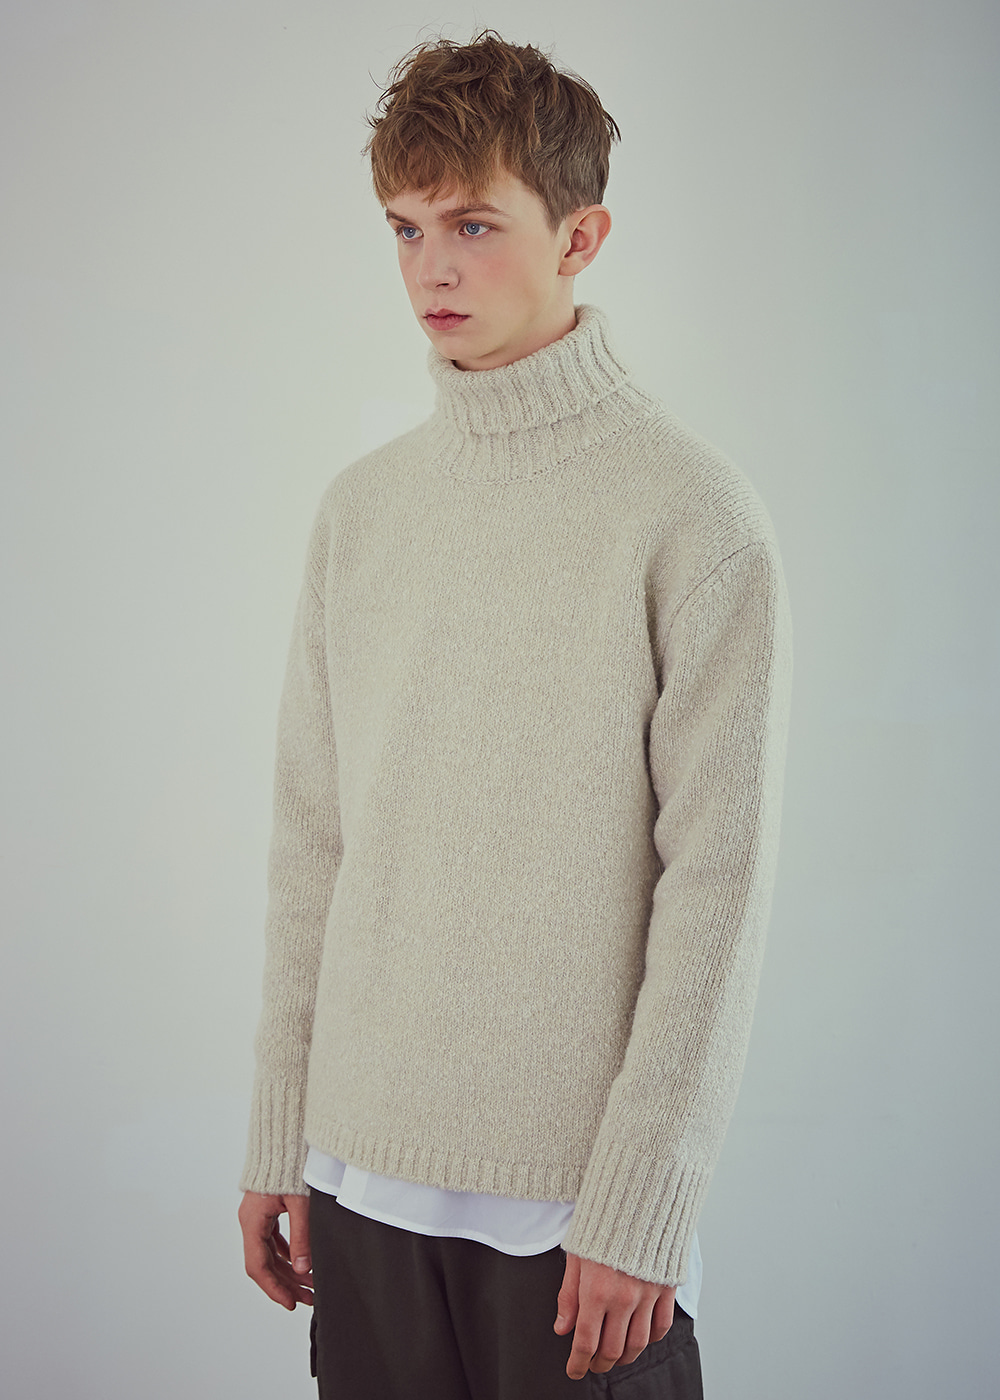 Blank Wool-Blend Roll-neck Sweater - Melange Cream